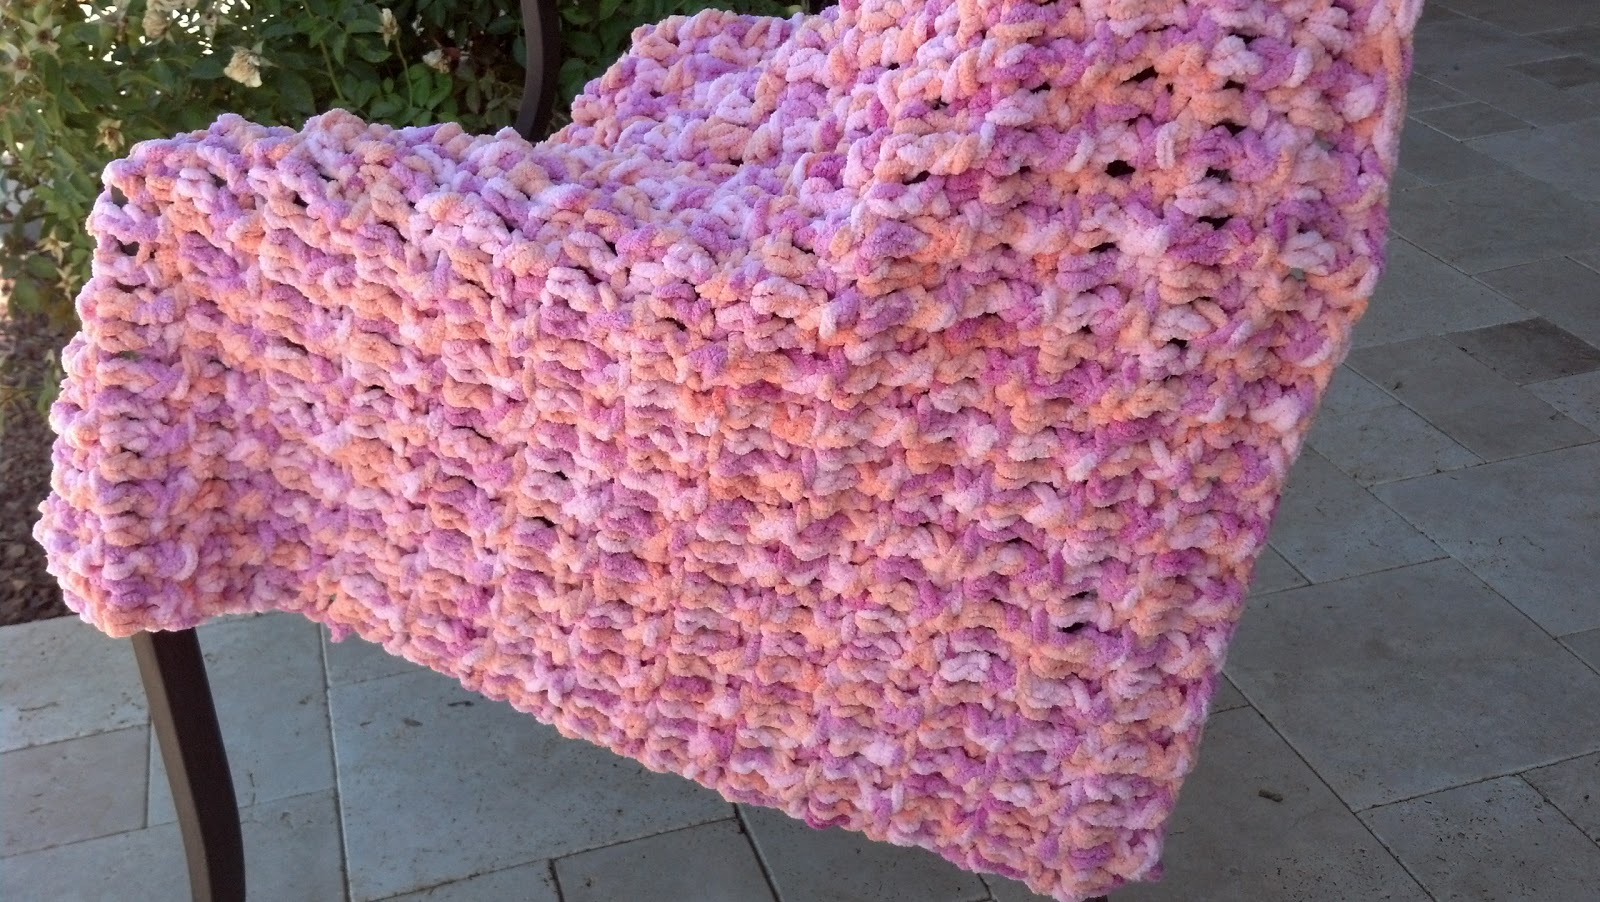 Crochet Patterns Bernat Blanket Yarn : ... the Gap: Stash Buster Challenge - Thick & Cuddly Baby Blanket